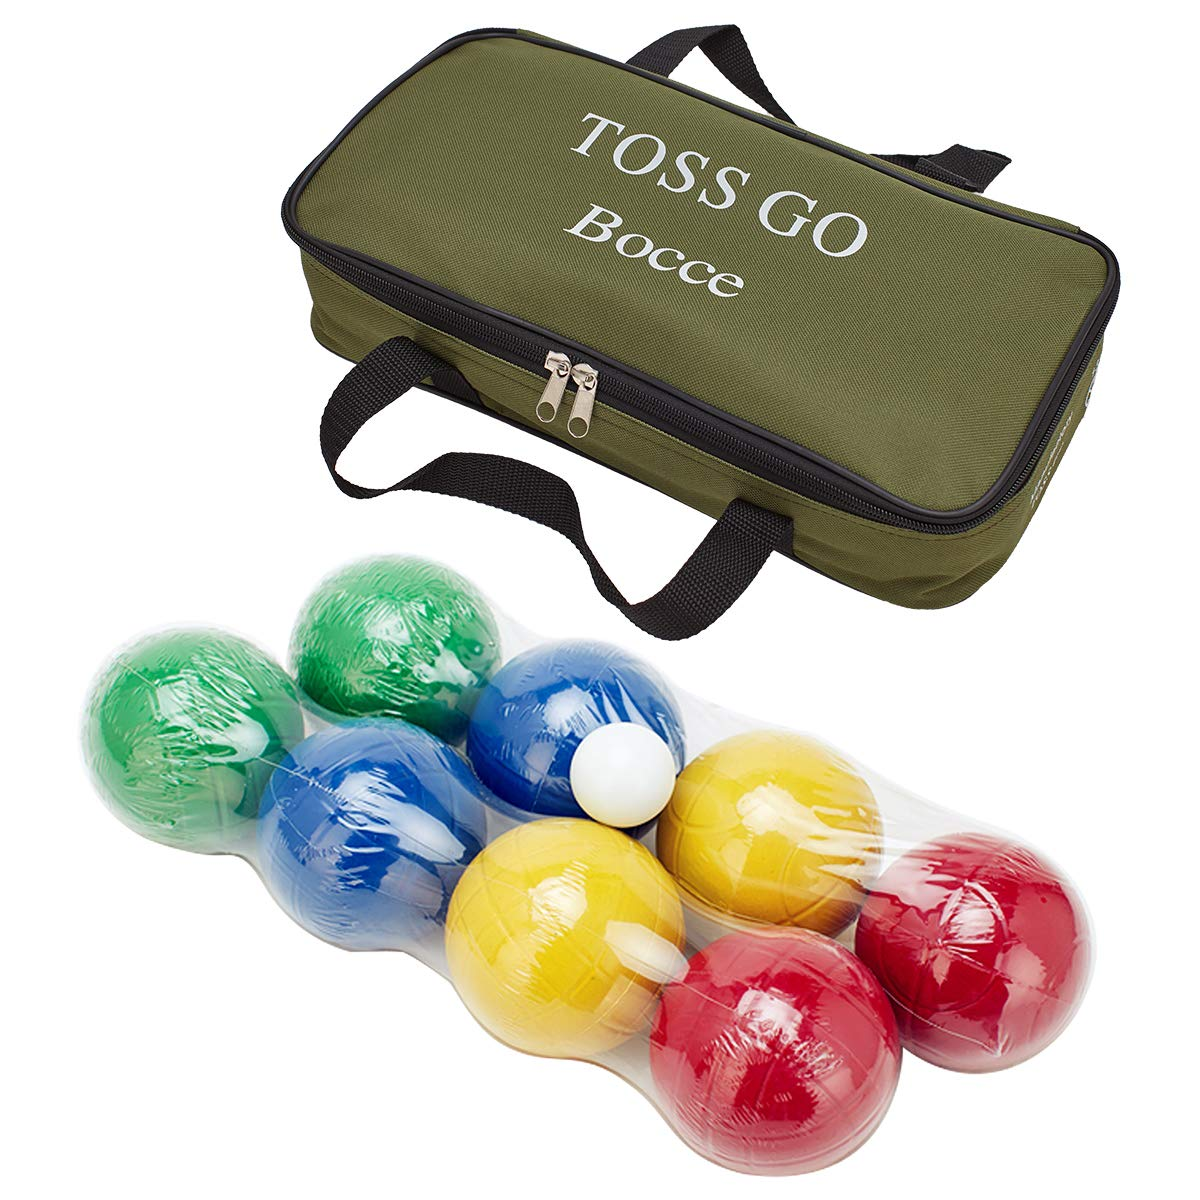 LAWN TIME Bocce Set - Recreational Plastic 90mm Bocce Ball Set with Carrier Bag - Classic Outdoor Toss Game by LAWN TIME